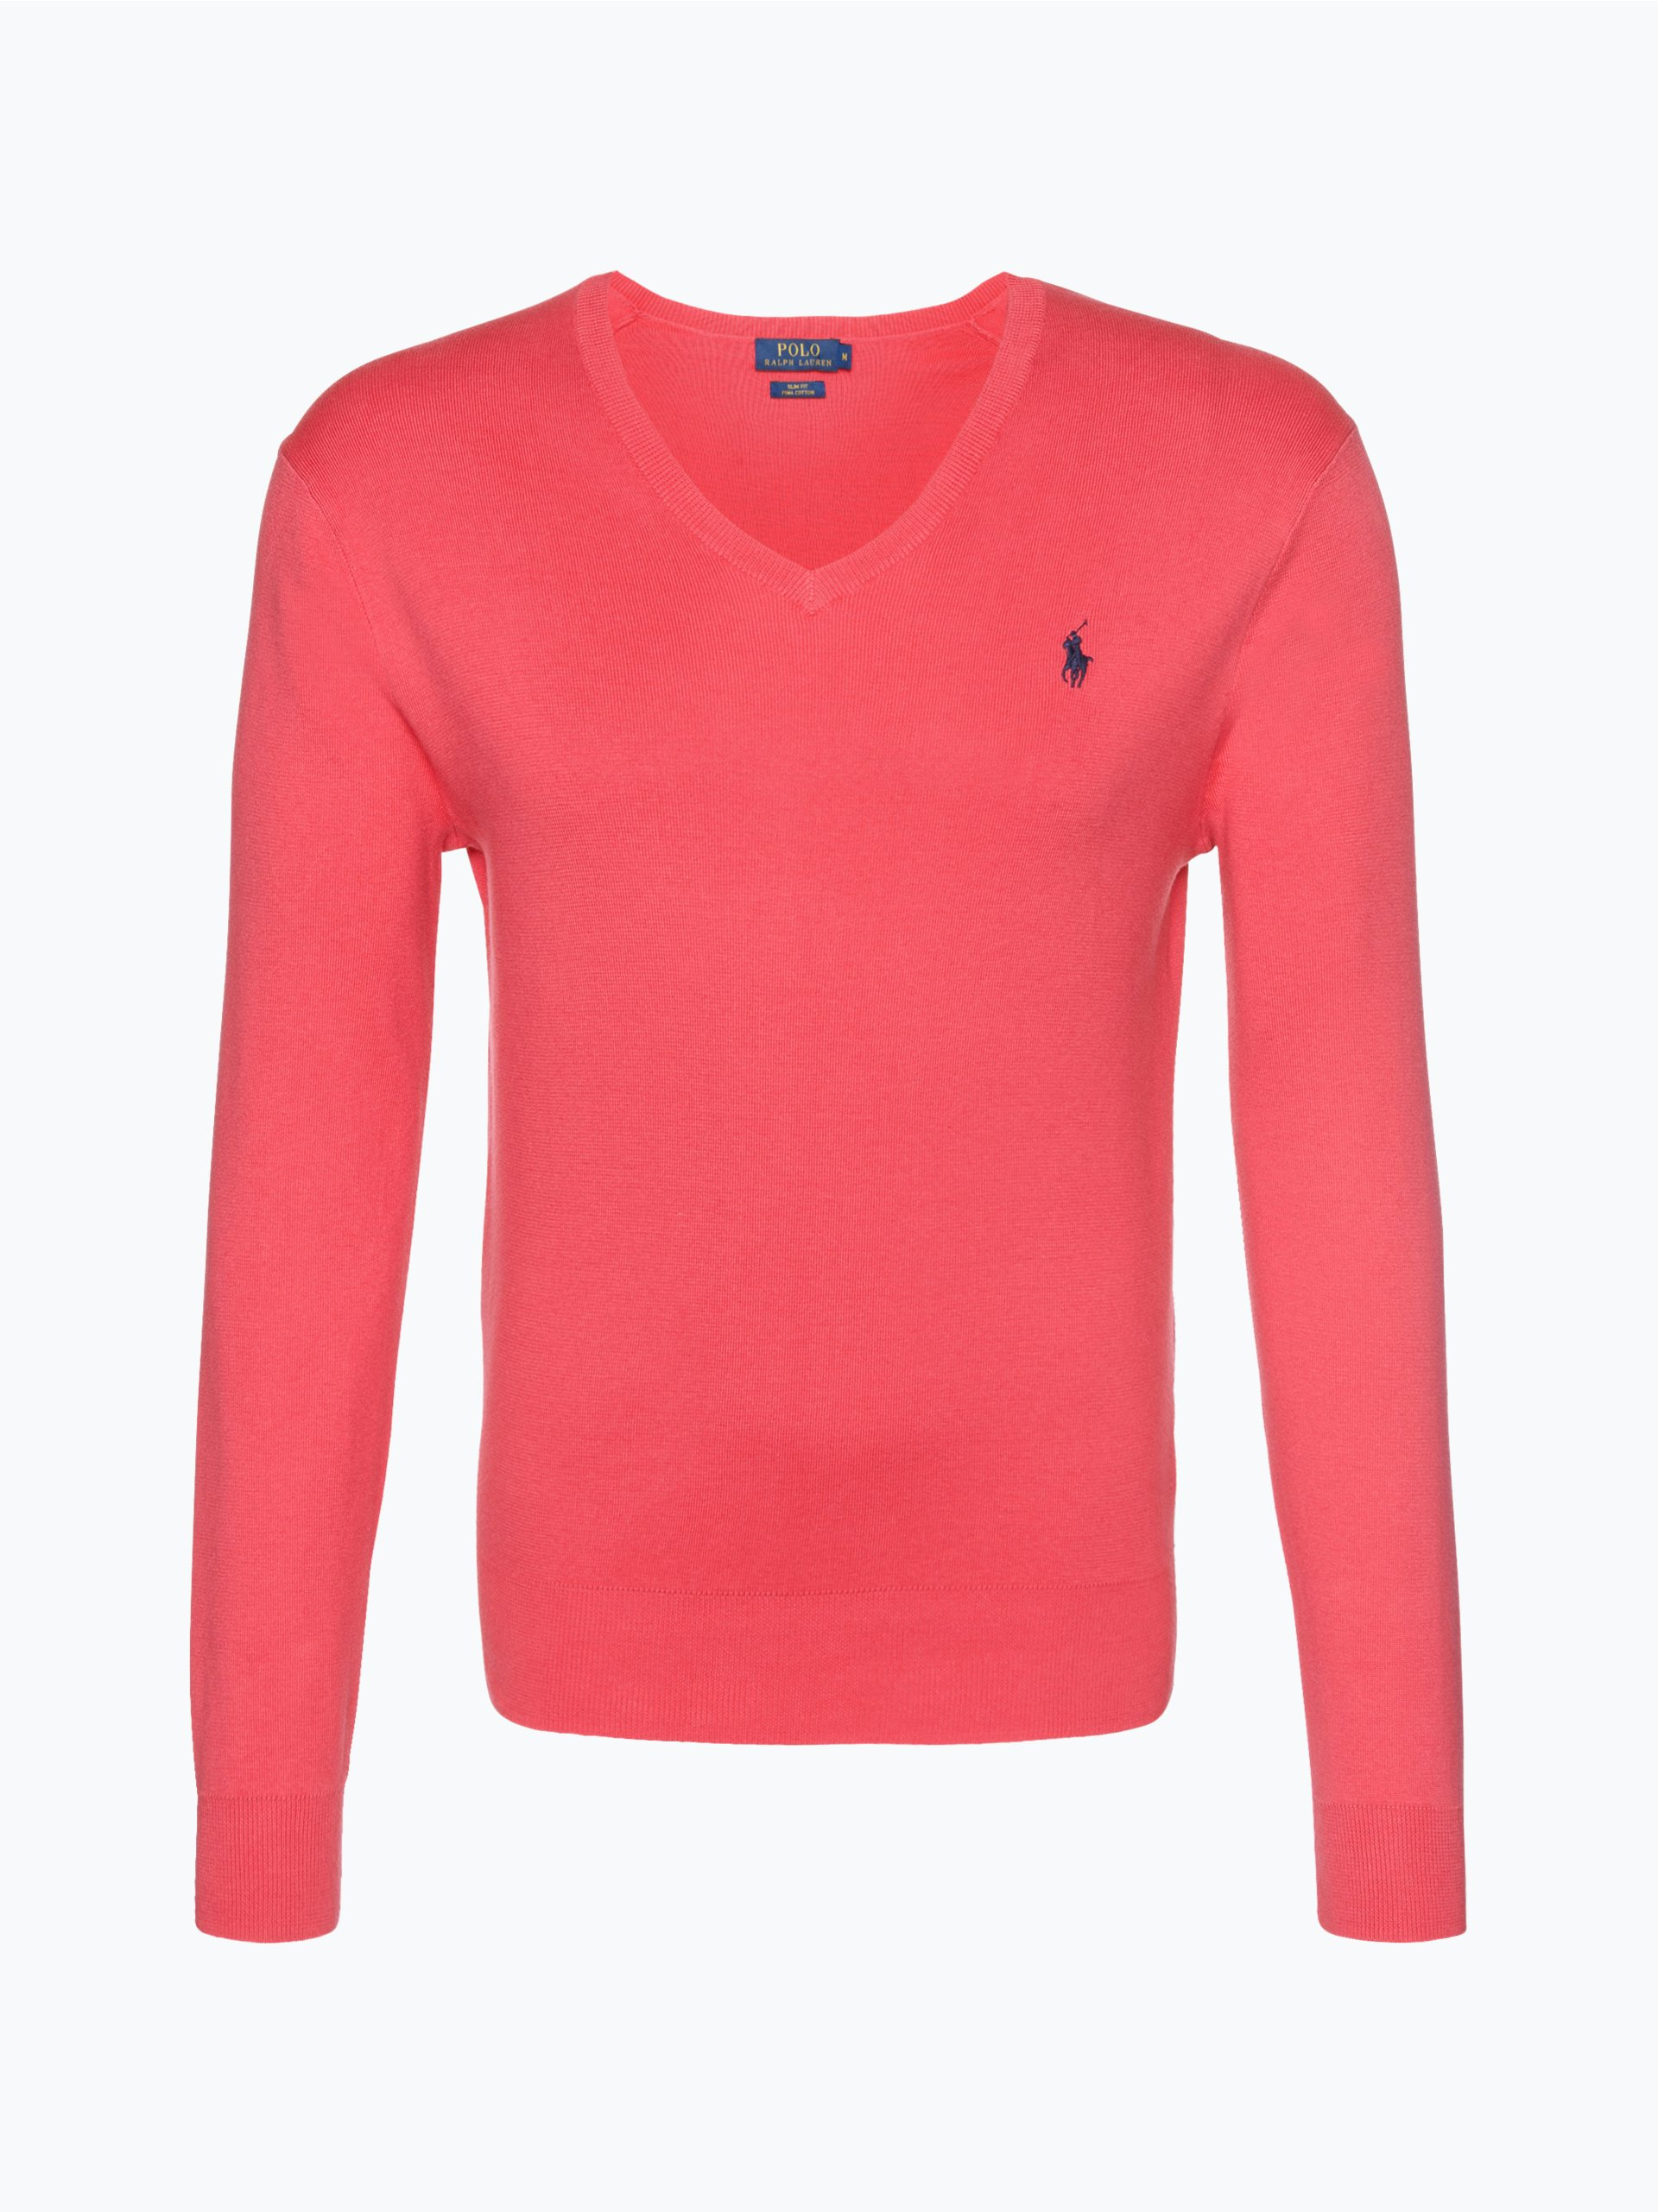 polo ralph lauren herren pullover pink uni online kaufen vangraaf com. Black Bedroom Furniture Sets. Home Design Ideas